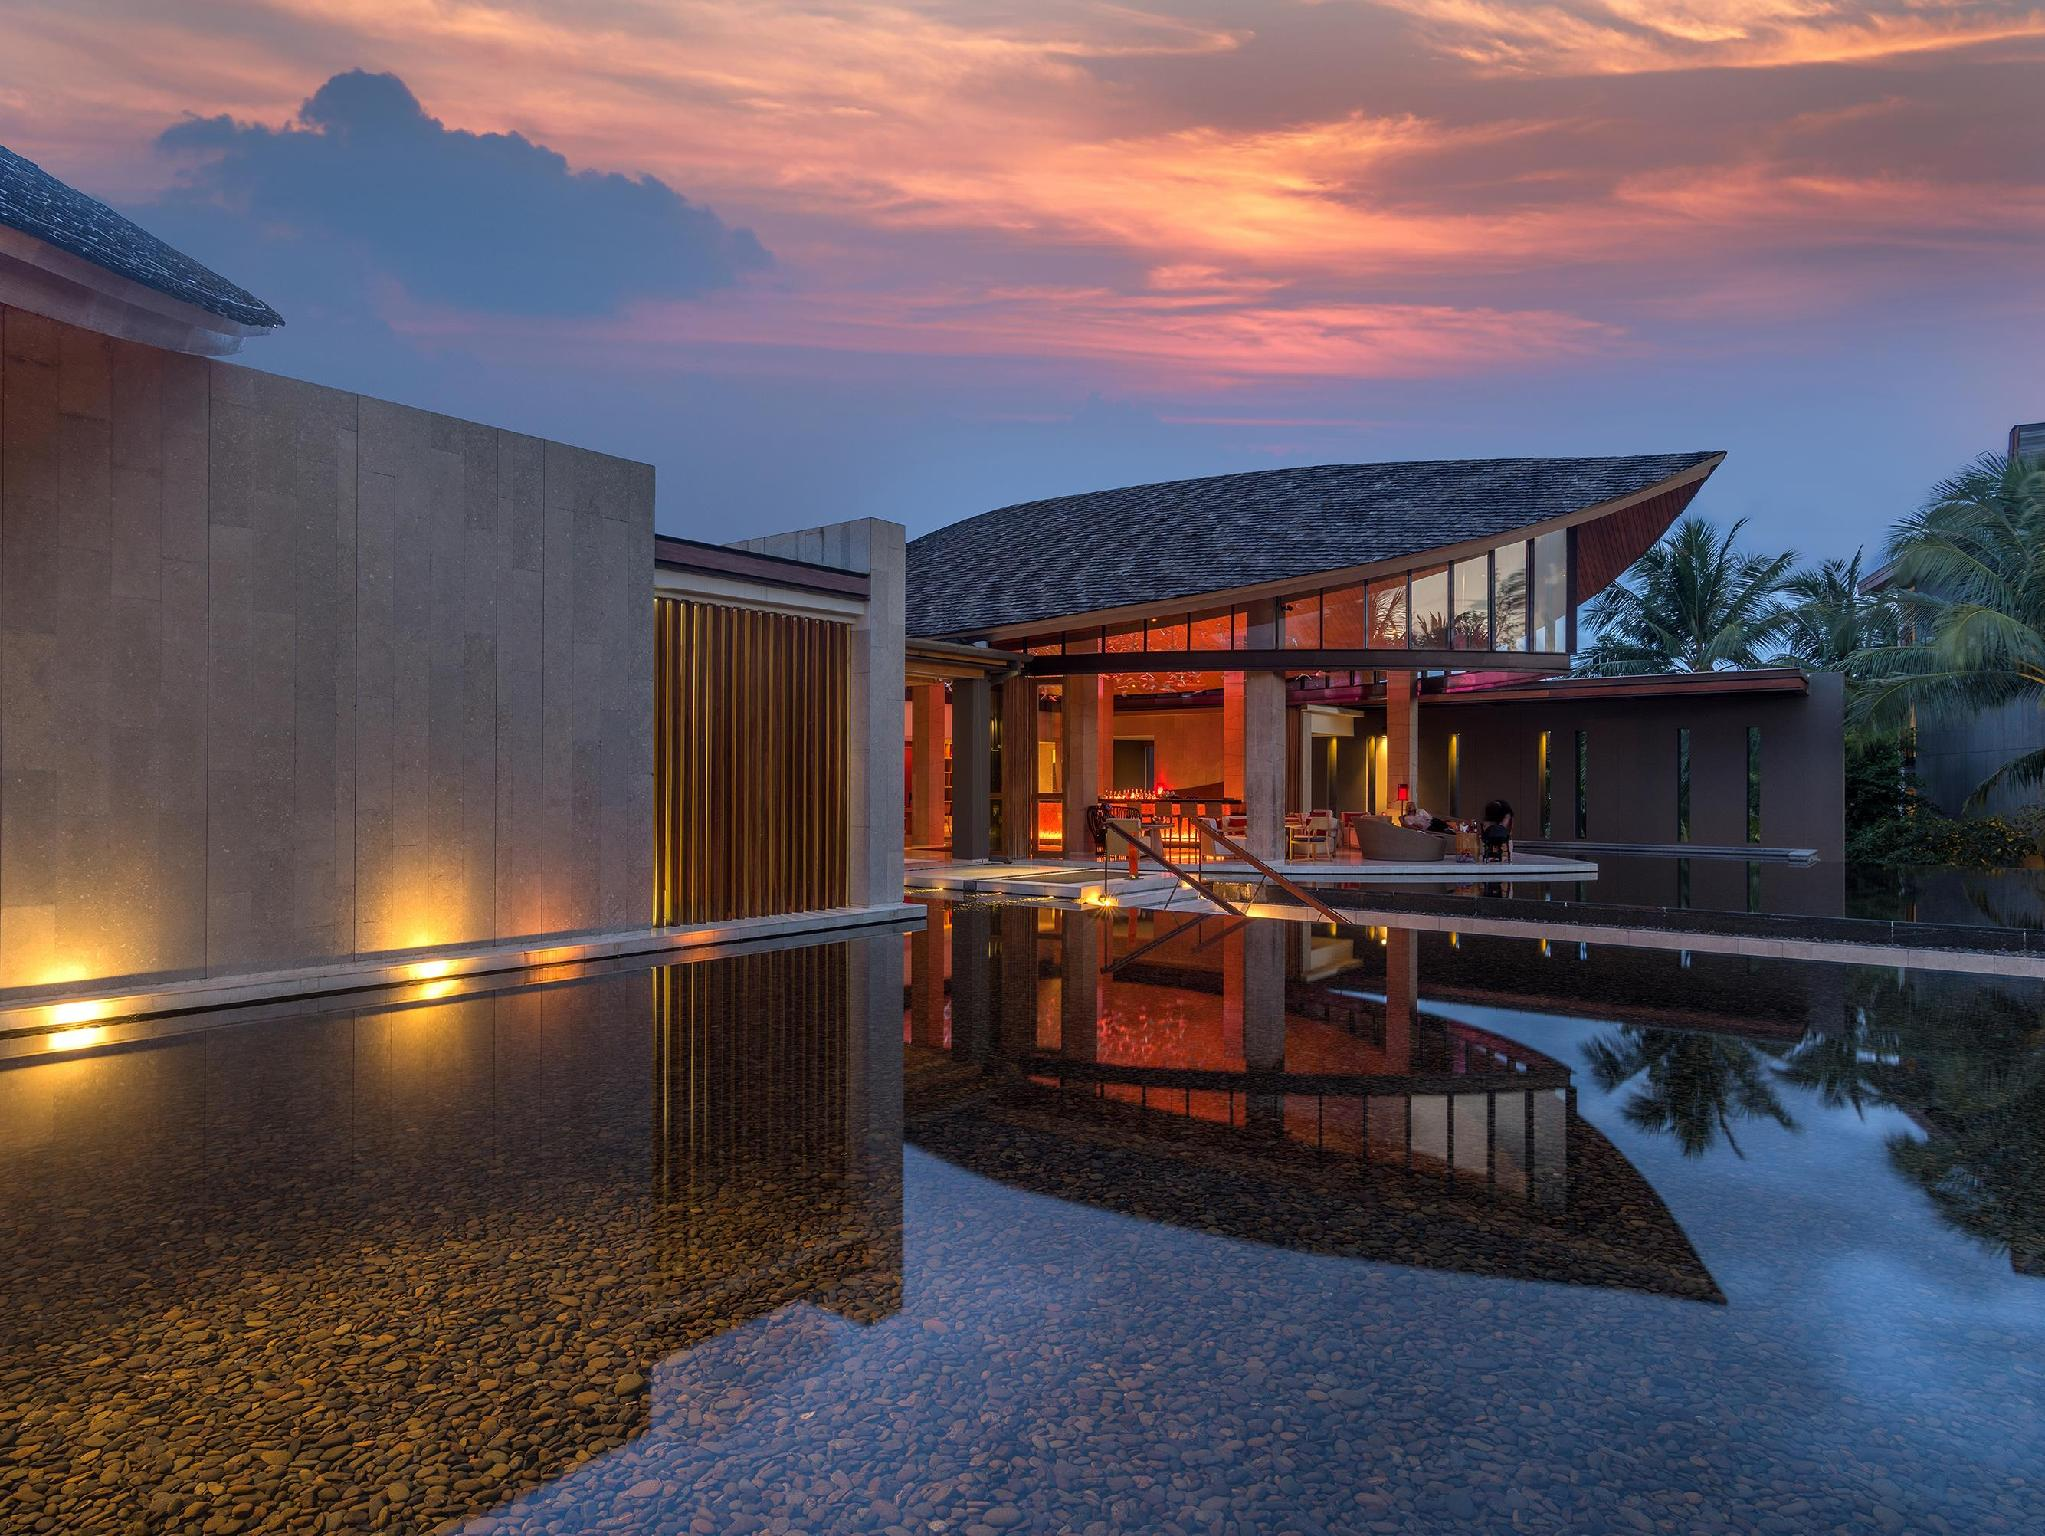 Renaissance Phuket Resort & Spa A Marriott Luxury & Lifestyle Hotel39